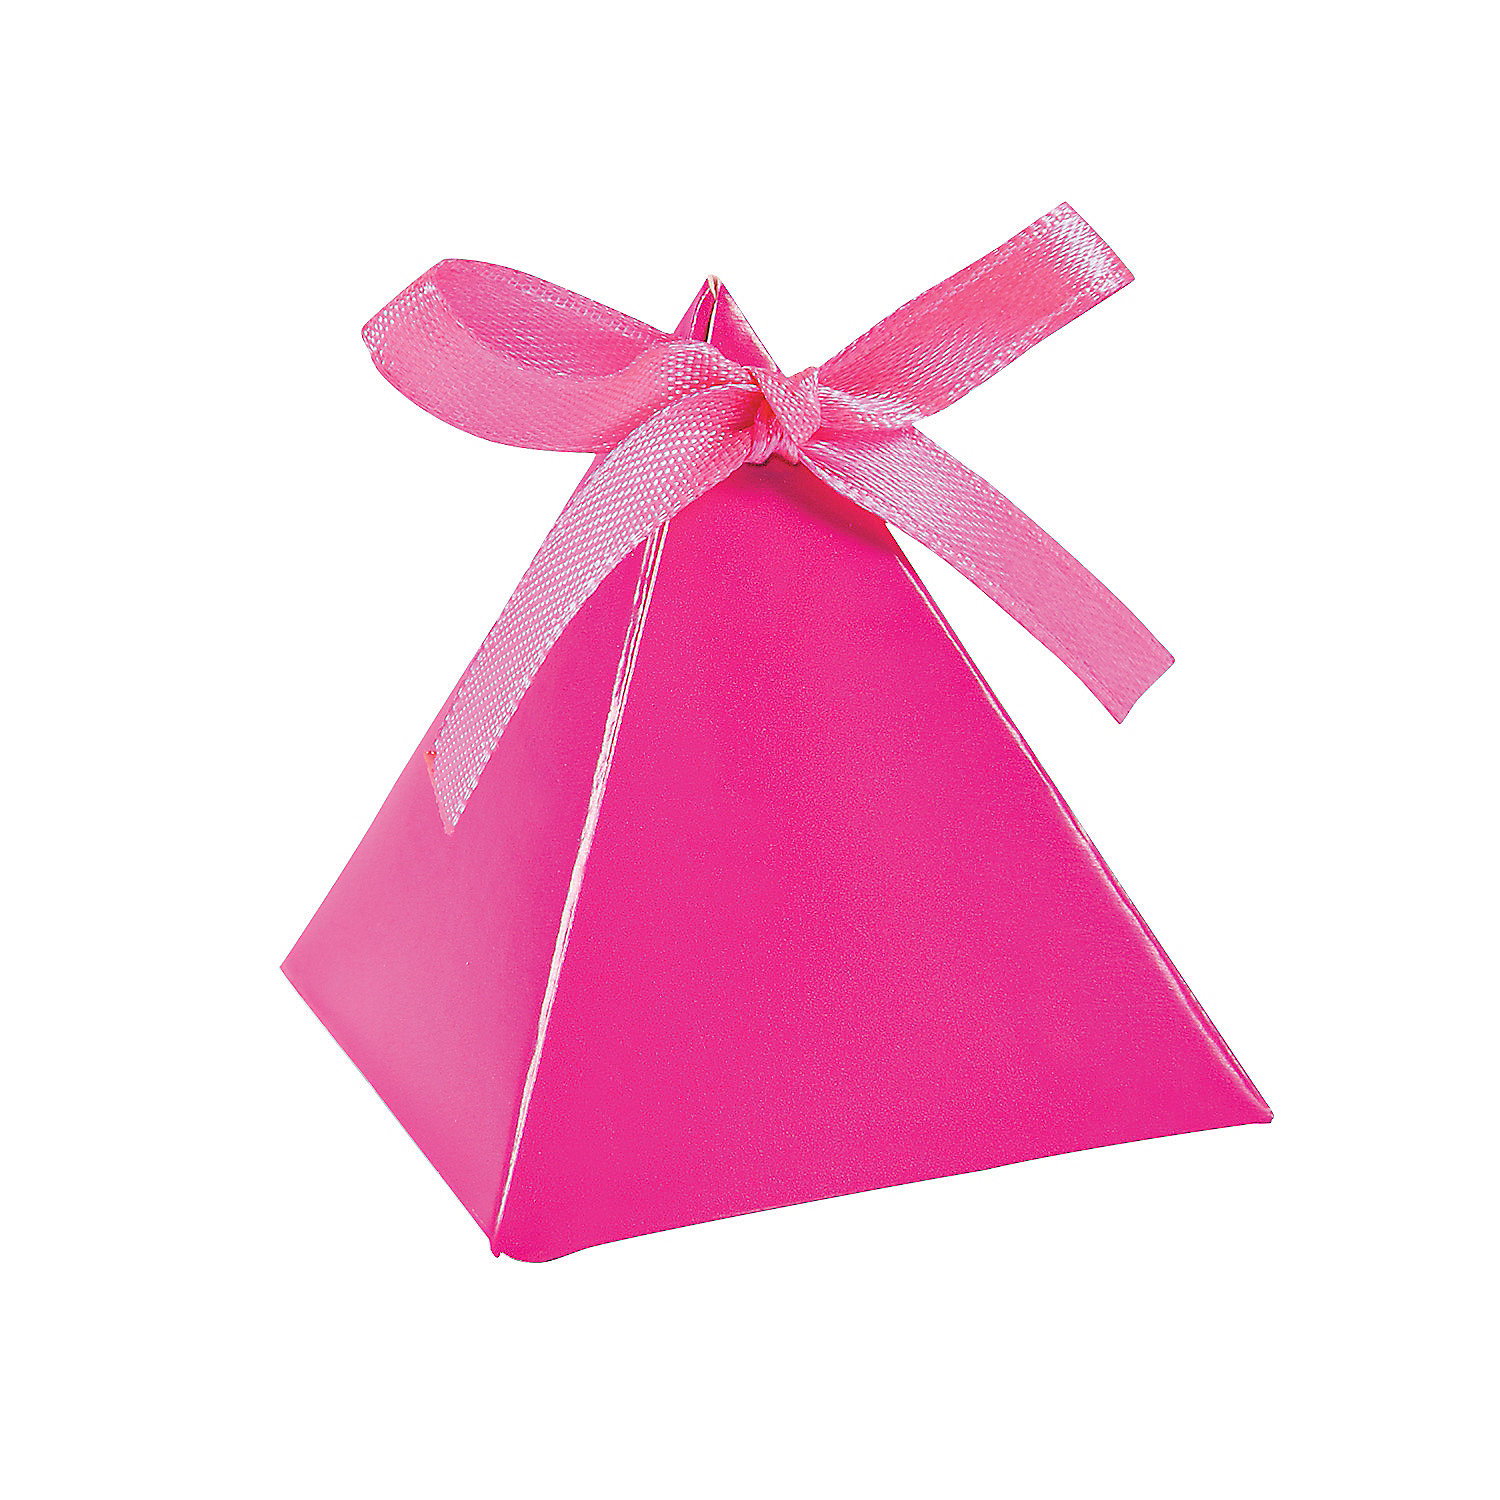 IN-13697767 Hot Pink Triangle Favor Boxes 24 Piece(s) | eBay